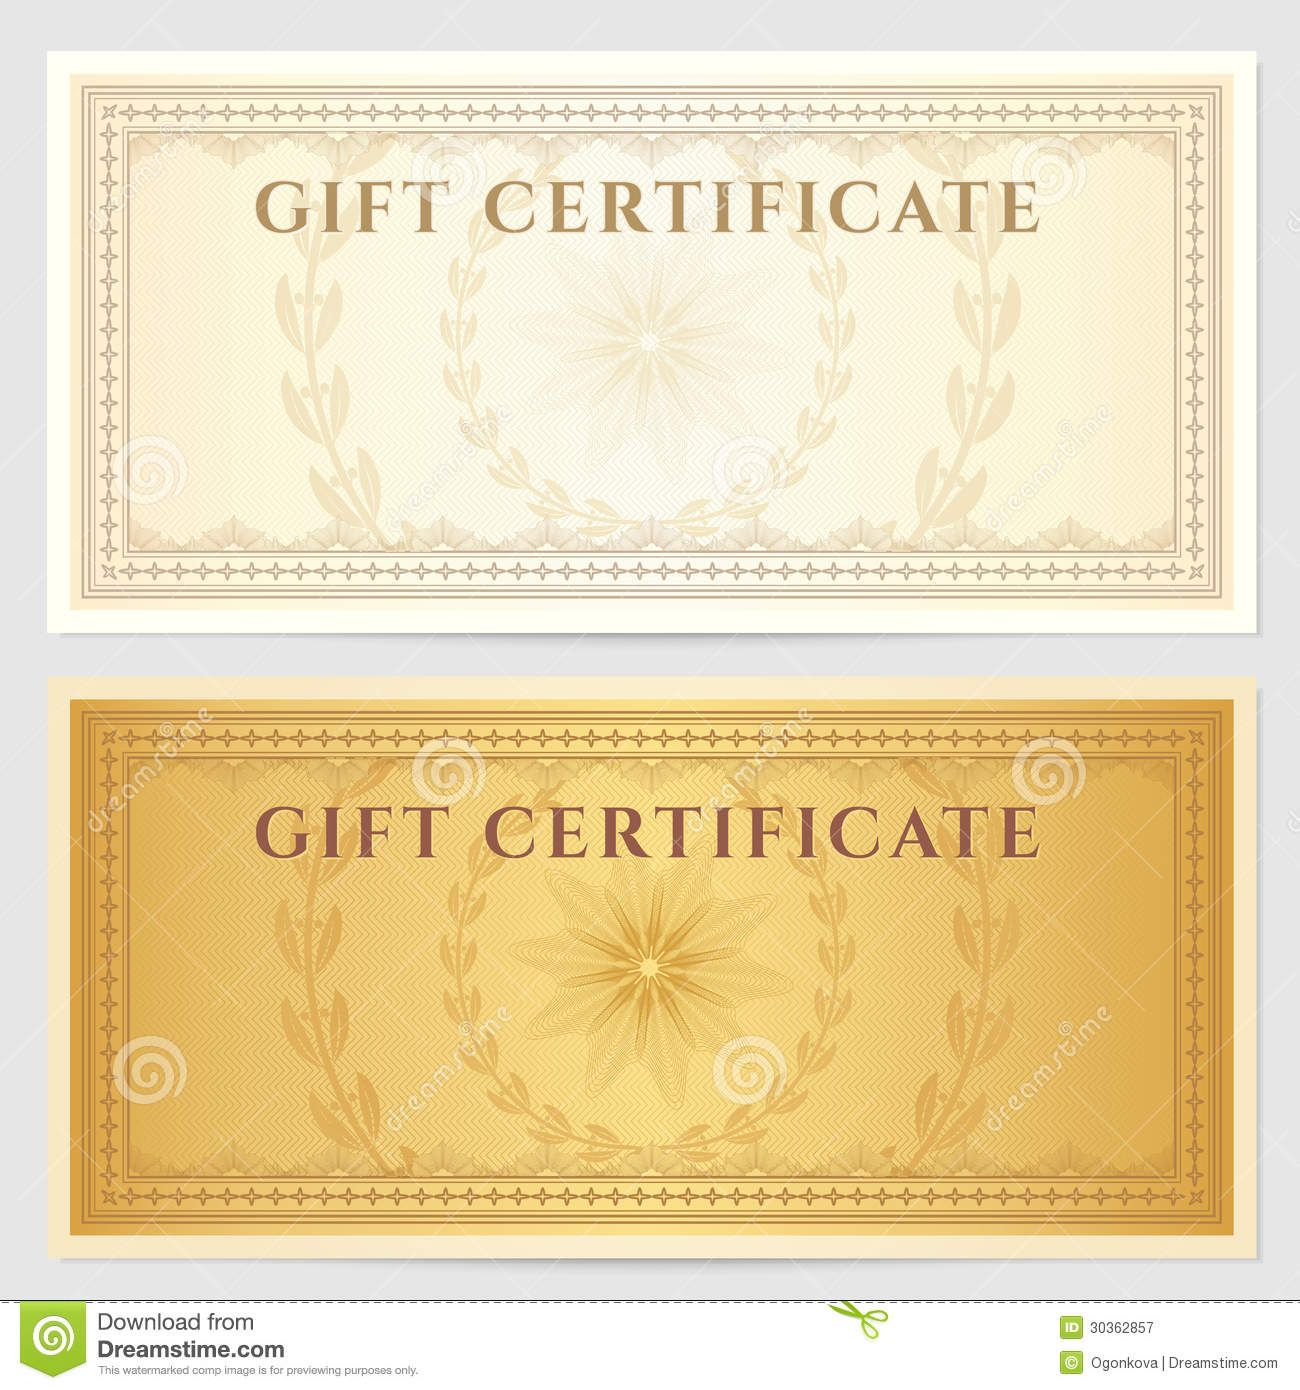 Certificate Voucher Coupon Banknote Diploma Currency Check Etc